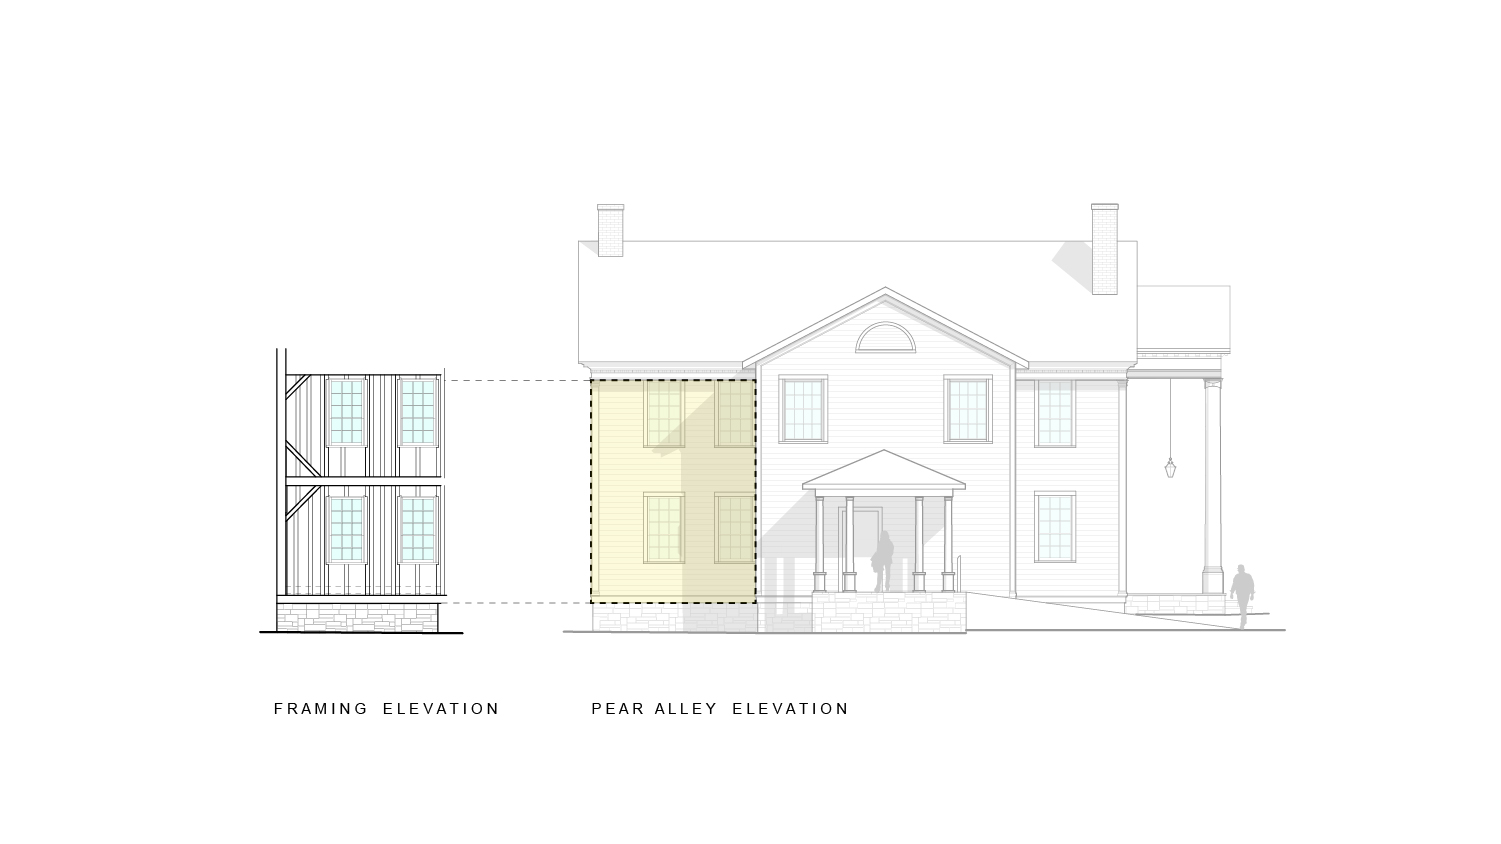 milford-community-house-pear-alley-framing-elevation